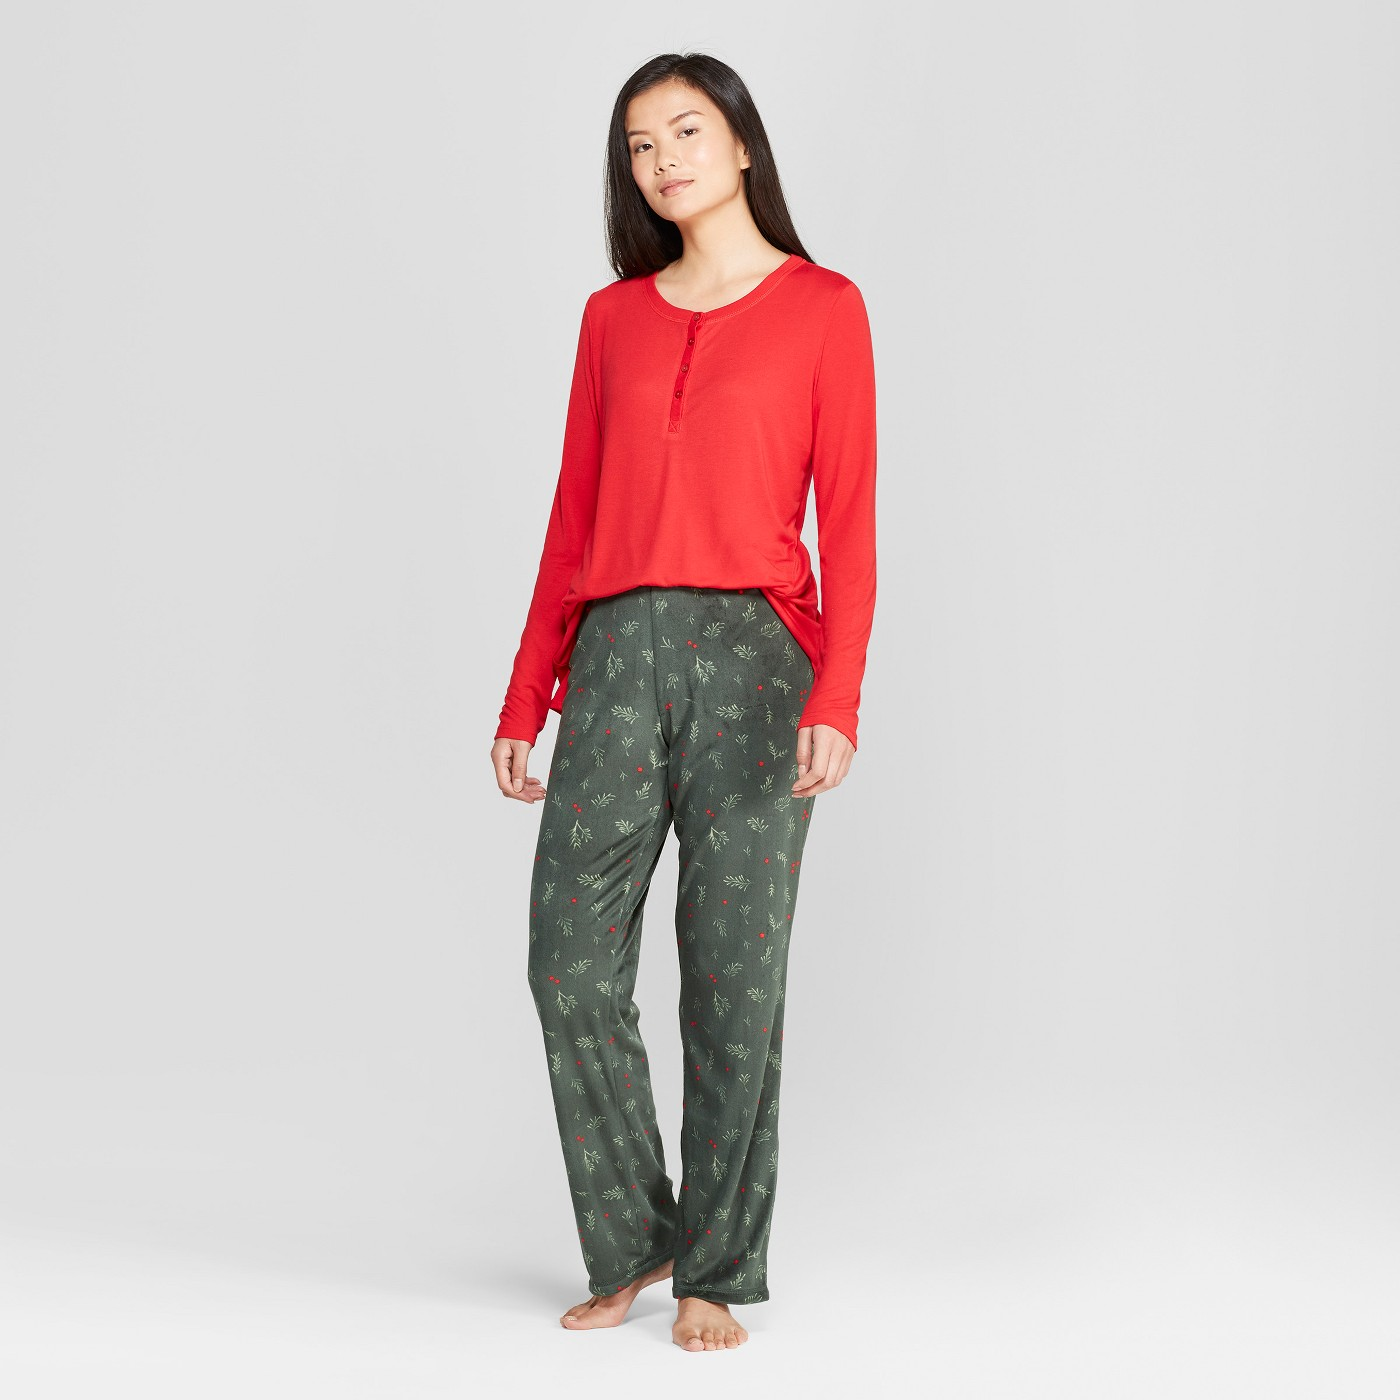 Cozy Fleece Holly Berry Pajama Set $19 - I CANNOT get enough of these pants!! I've done extra laundry just so I could wear these another night. The material is like a silk meets velvet & in my favorite color. The shirt is cute and festive but a little see through.Click here to shop